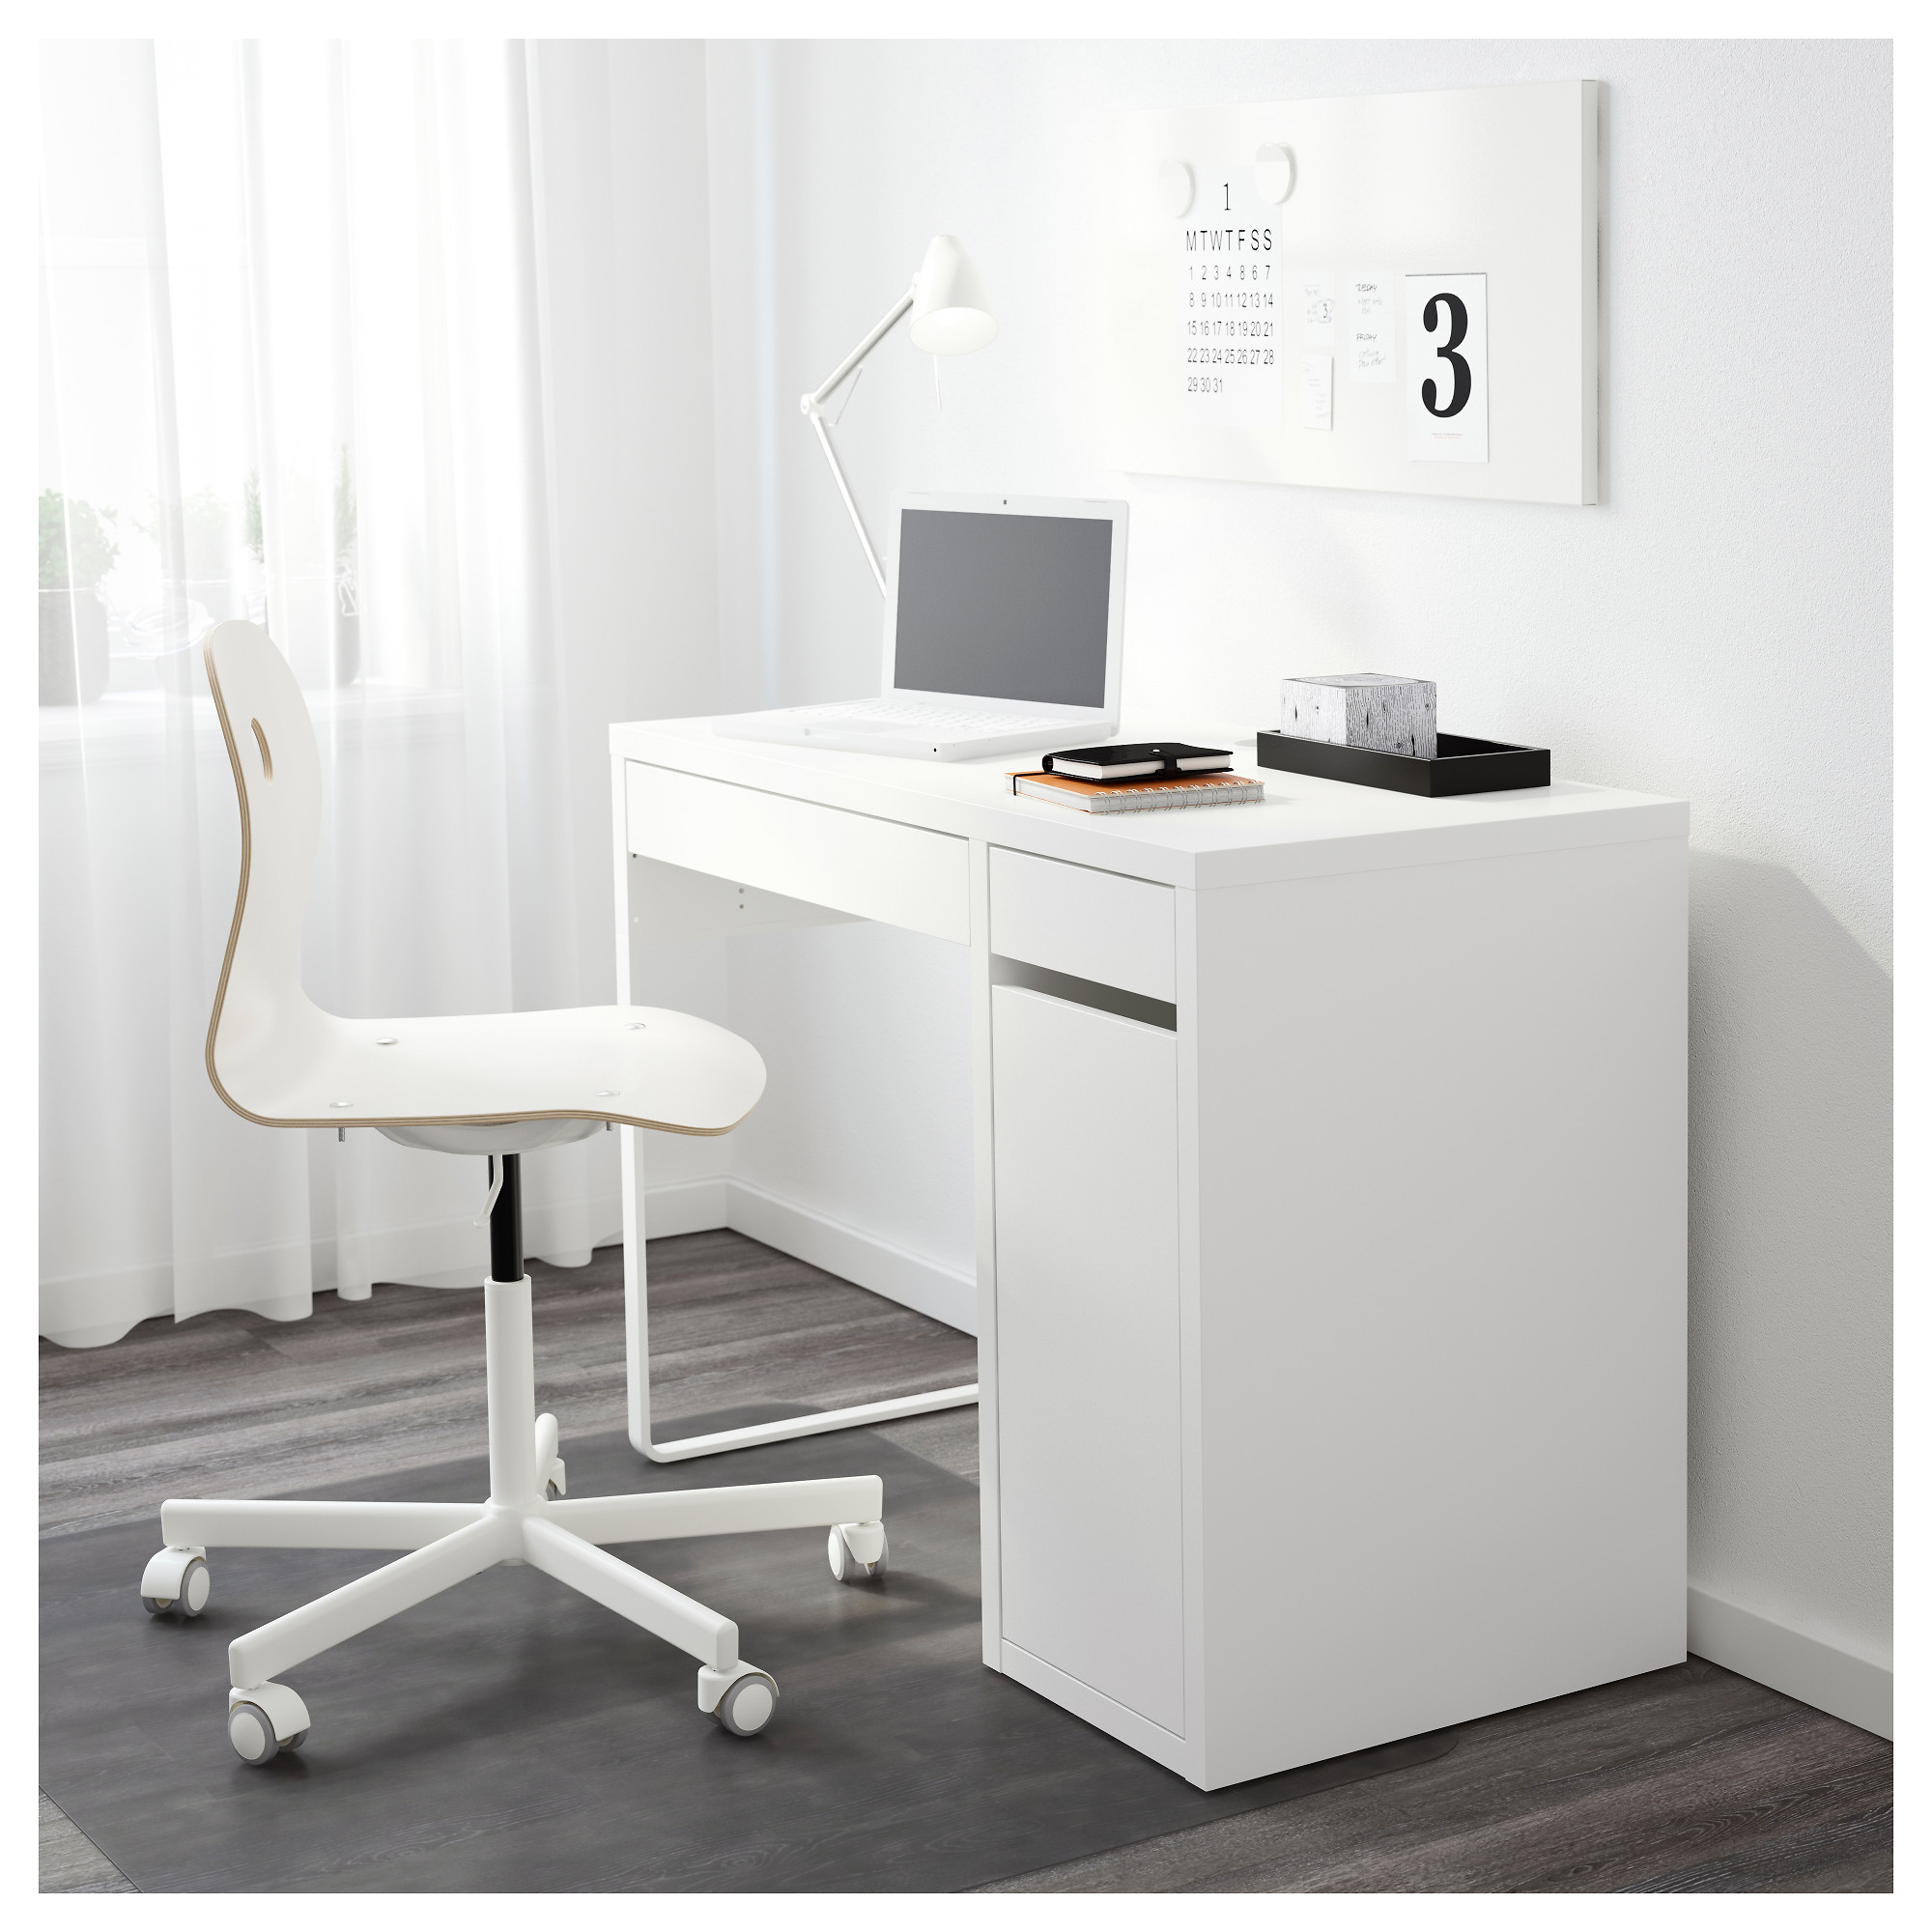 keyboard quotations office classic deals desk shopping out tray white home get on find and with line drawer merax cheap pull at computer guides drawers